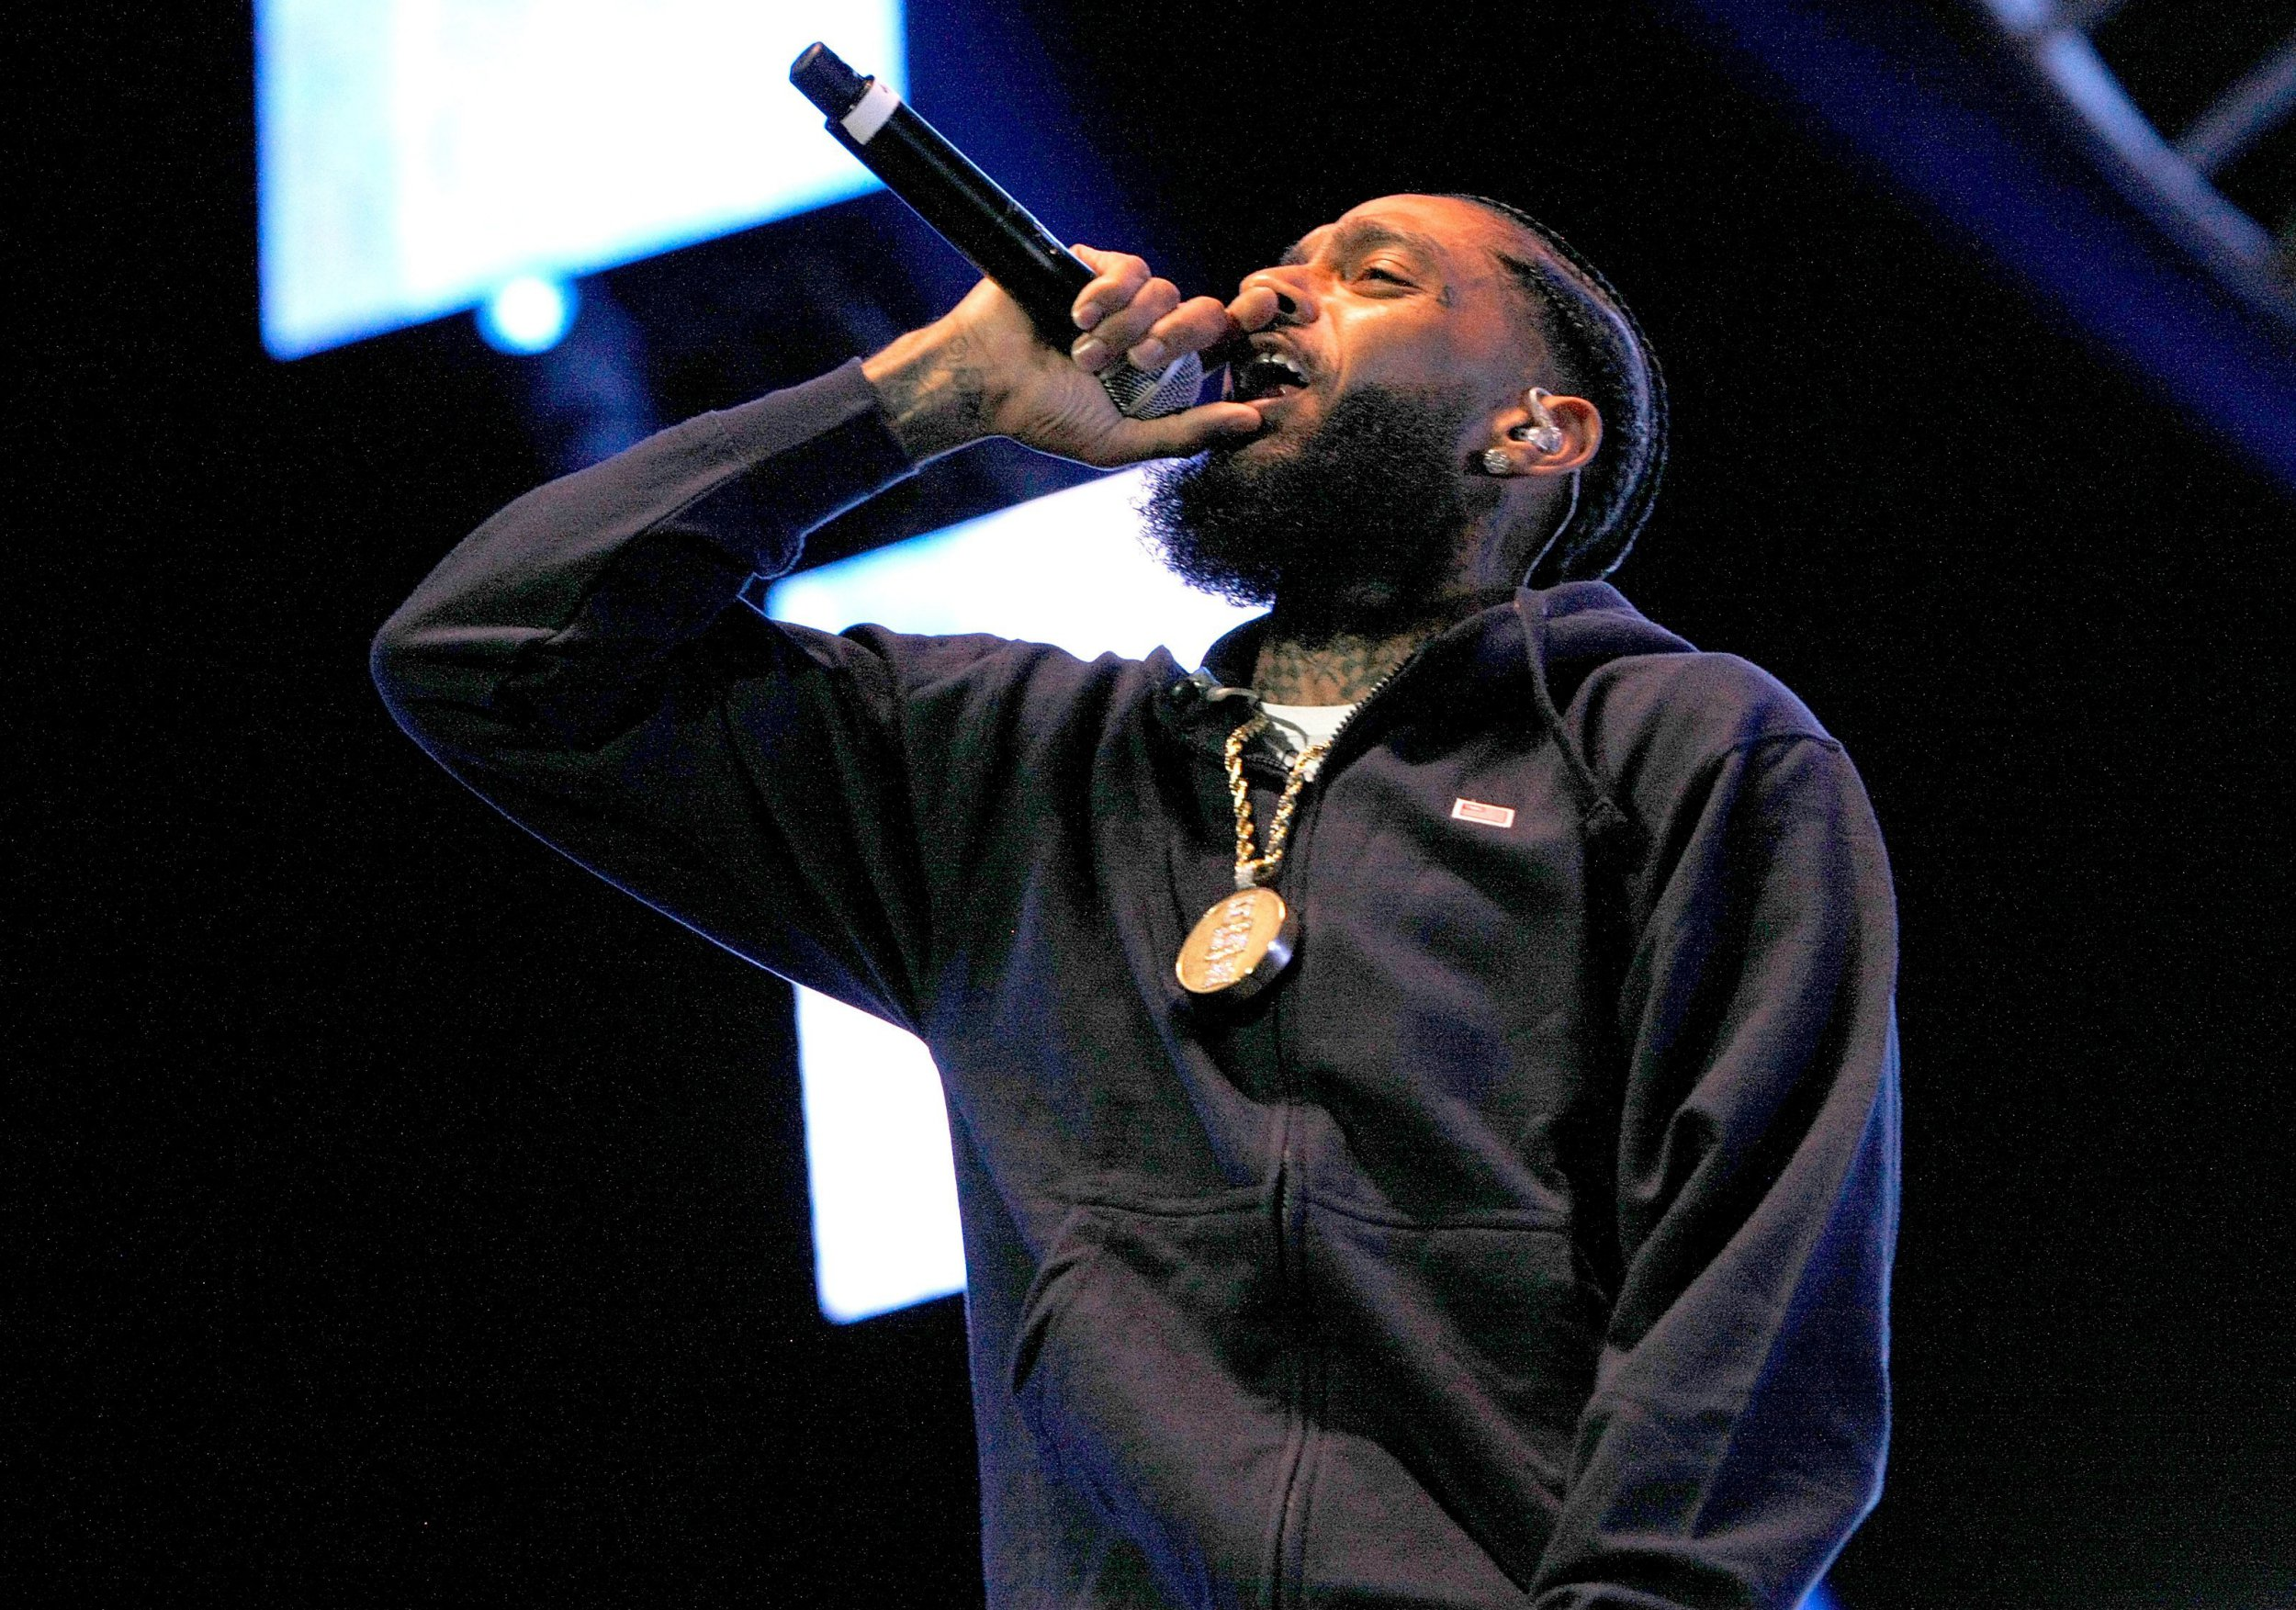 Mandatory Credit: Photo by Imagespace/REX (9725827v) Nipsey Hussle, Ermias Asghedom BET Experience Live!, Los Angeles, USA - 23 Jun 2018